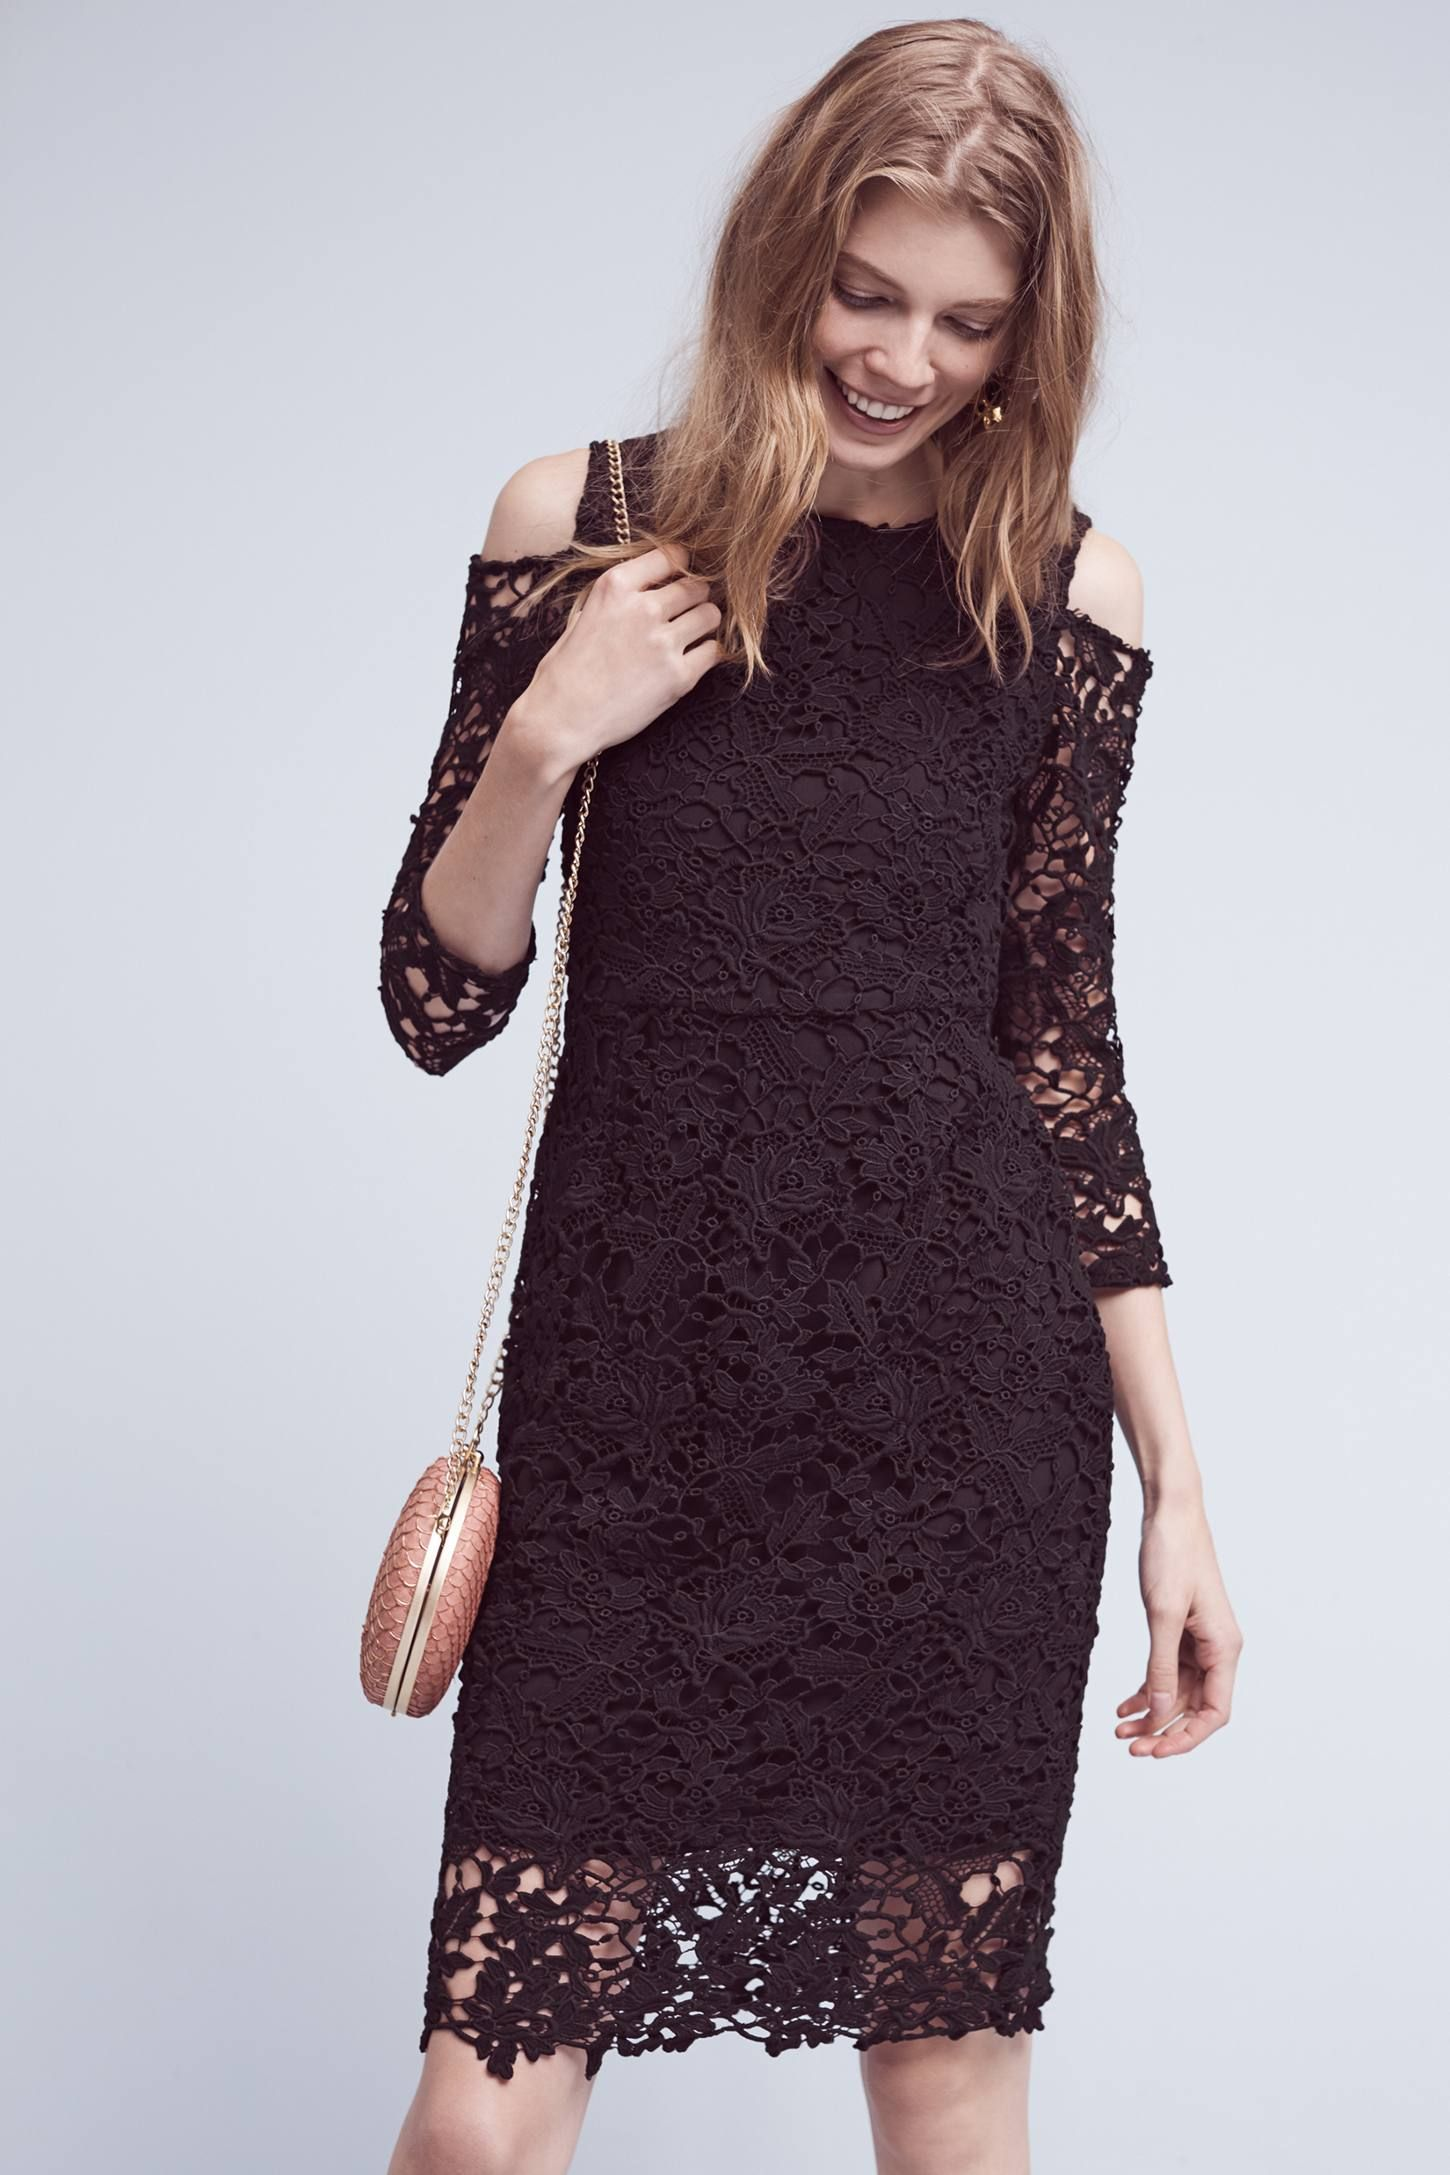 a28e358eefb Shop the Willa Open-Shoulder Lace Dress and more Anthropologie at  Anthropologie today. Read customer reviews